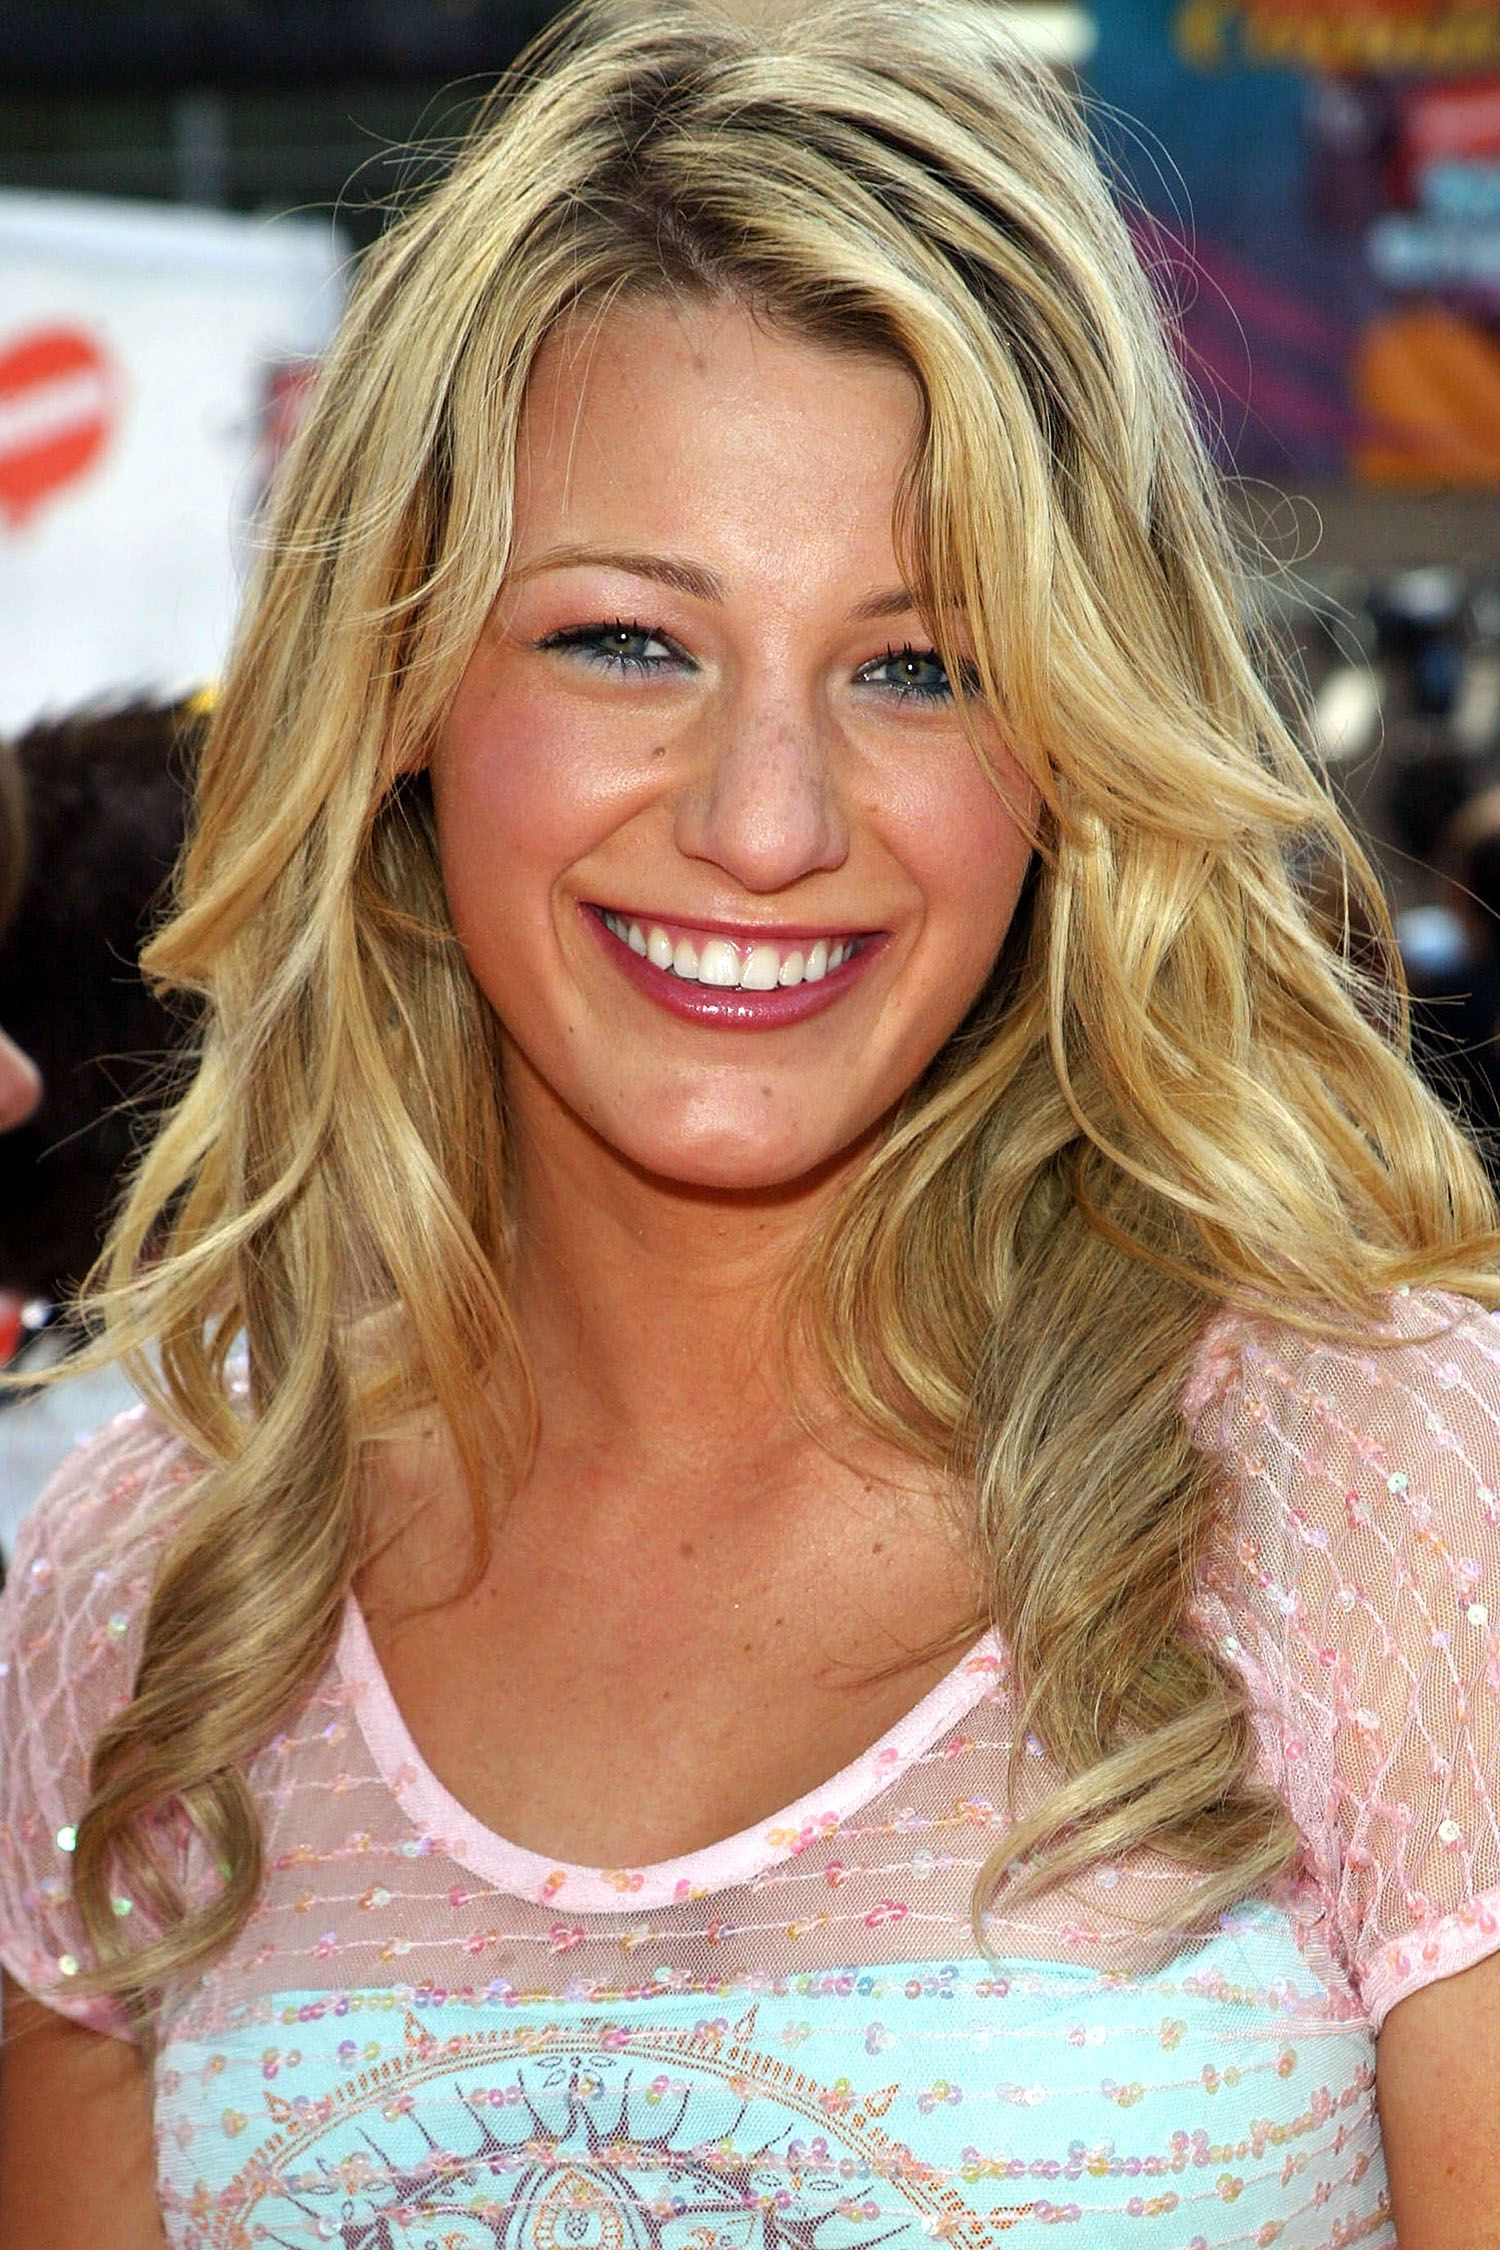 arrives at the 18th Annual Kids Choice Awards at UCLA's Pauley Pavillion on April 2, 2005 in Westwood, California.